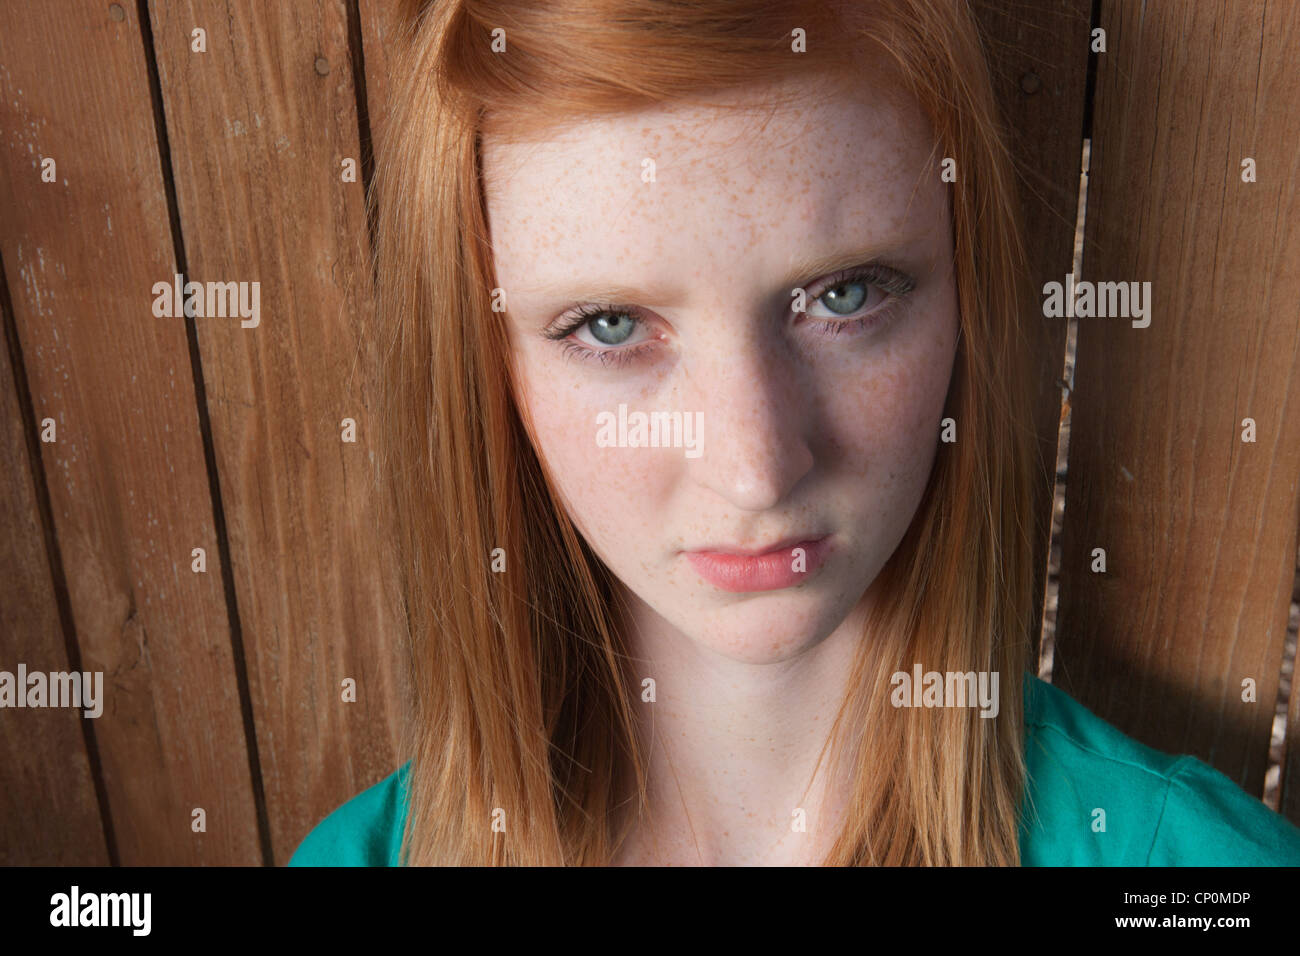 Fifteen year old girl with red hair and green eyes looks at camera with upset expression. - Stock Image